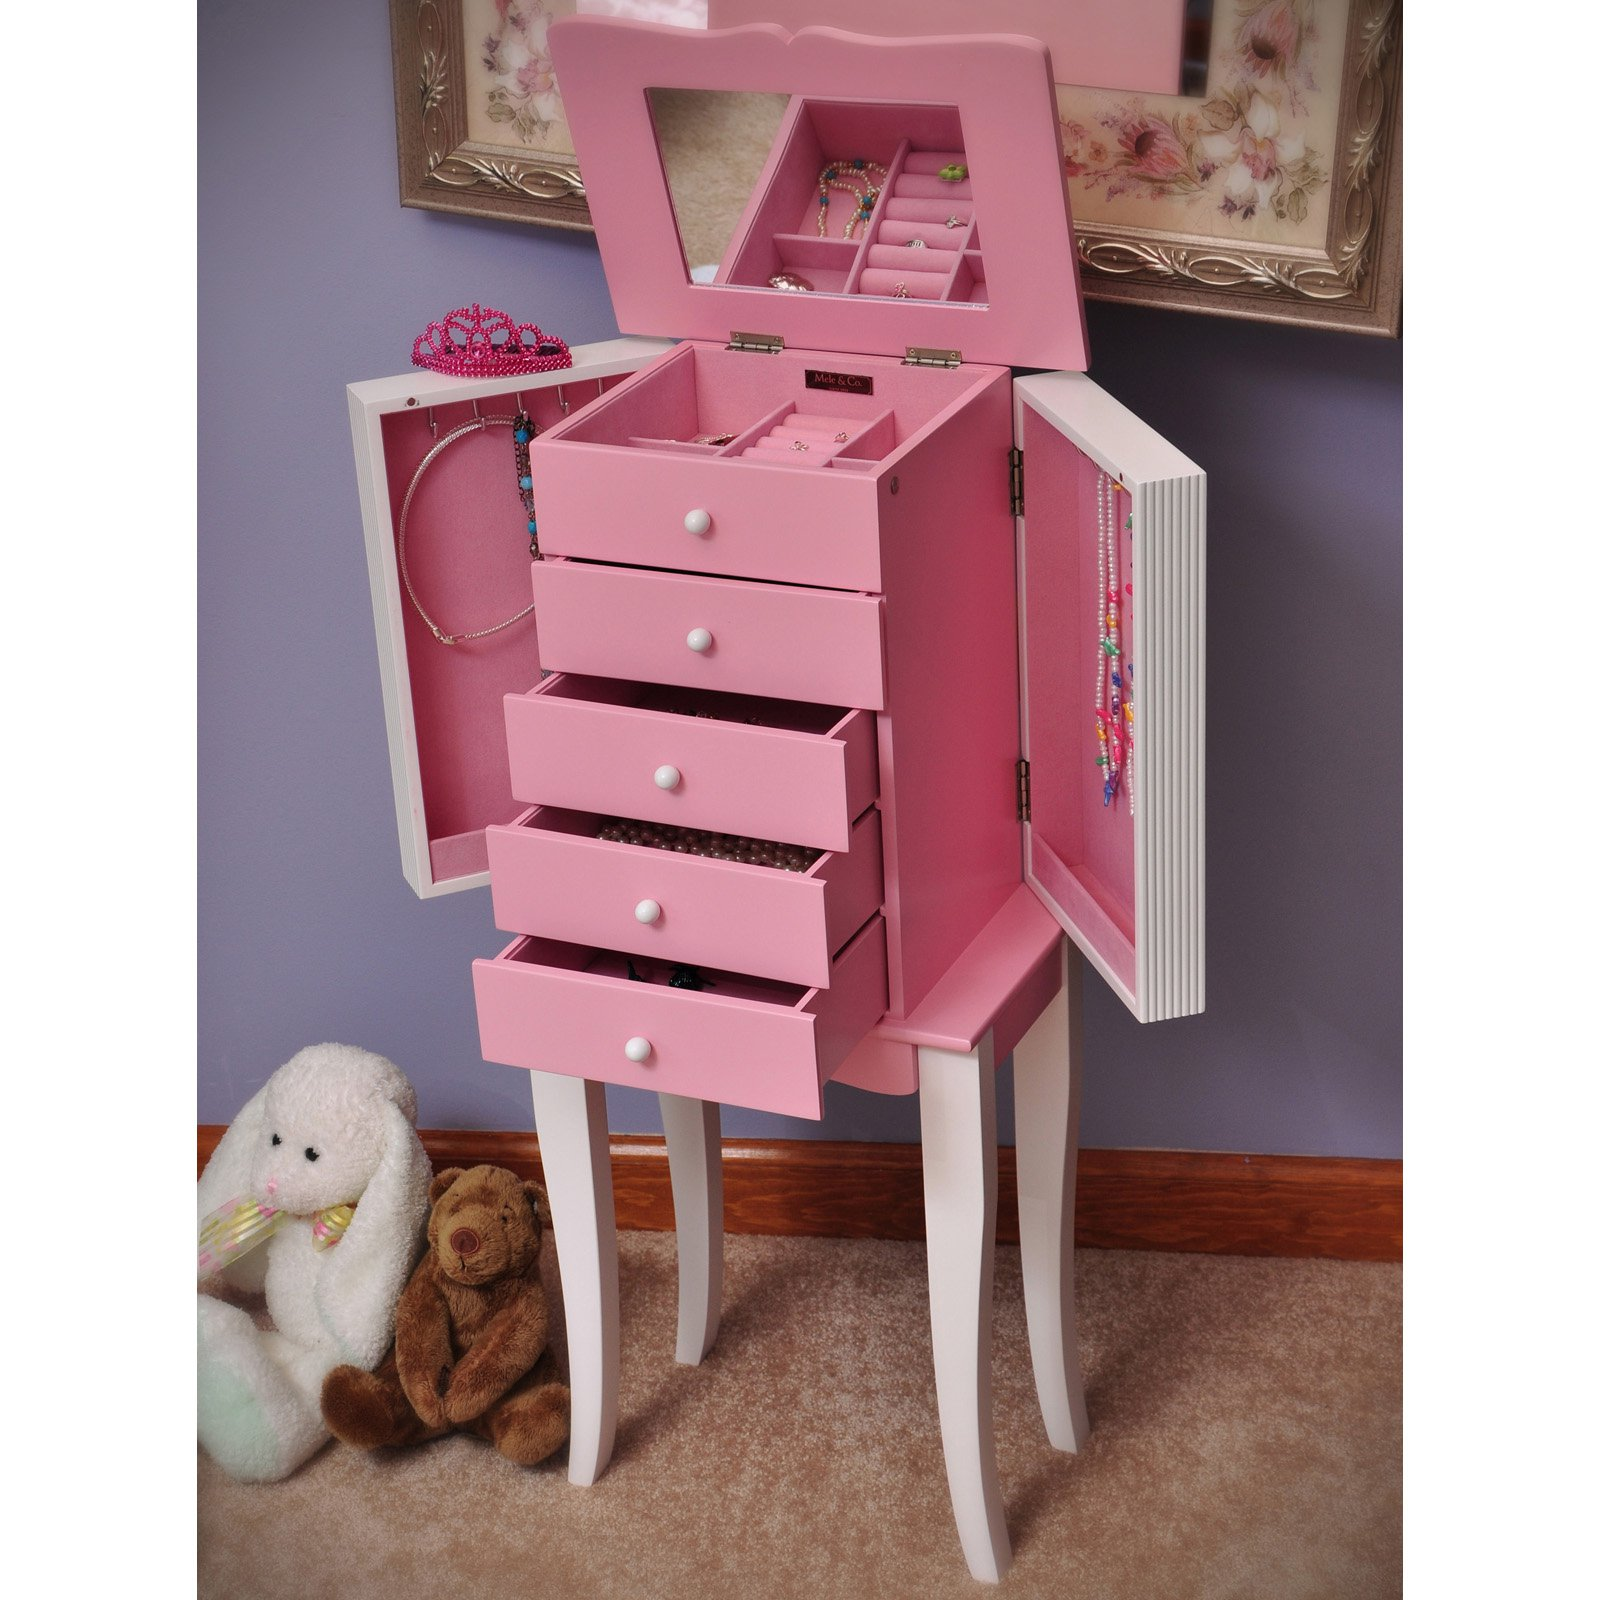 Mele Designs Louisa Girls Pink and White Wooden Jewelry Armoire